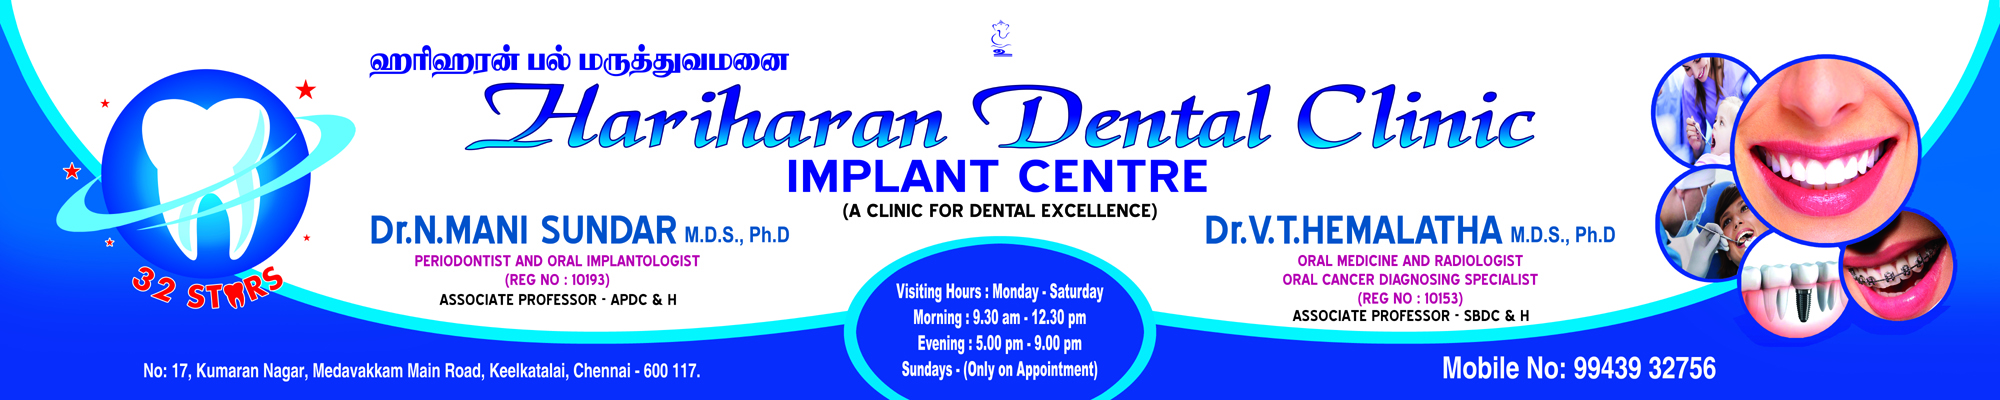 Hariharan Dental Clinic - Implant Centre